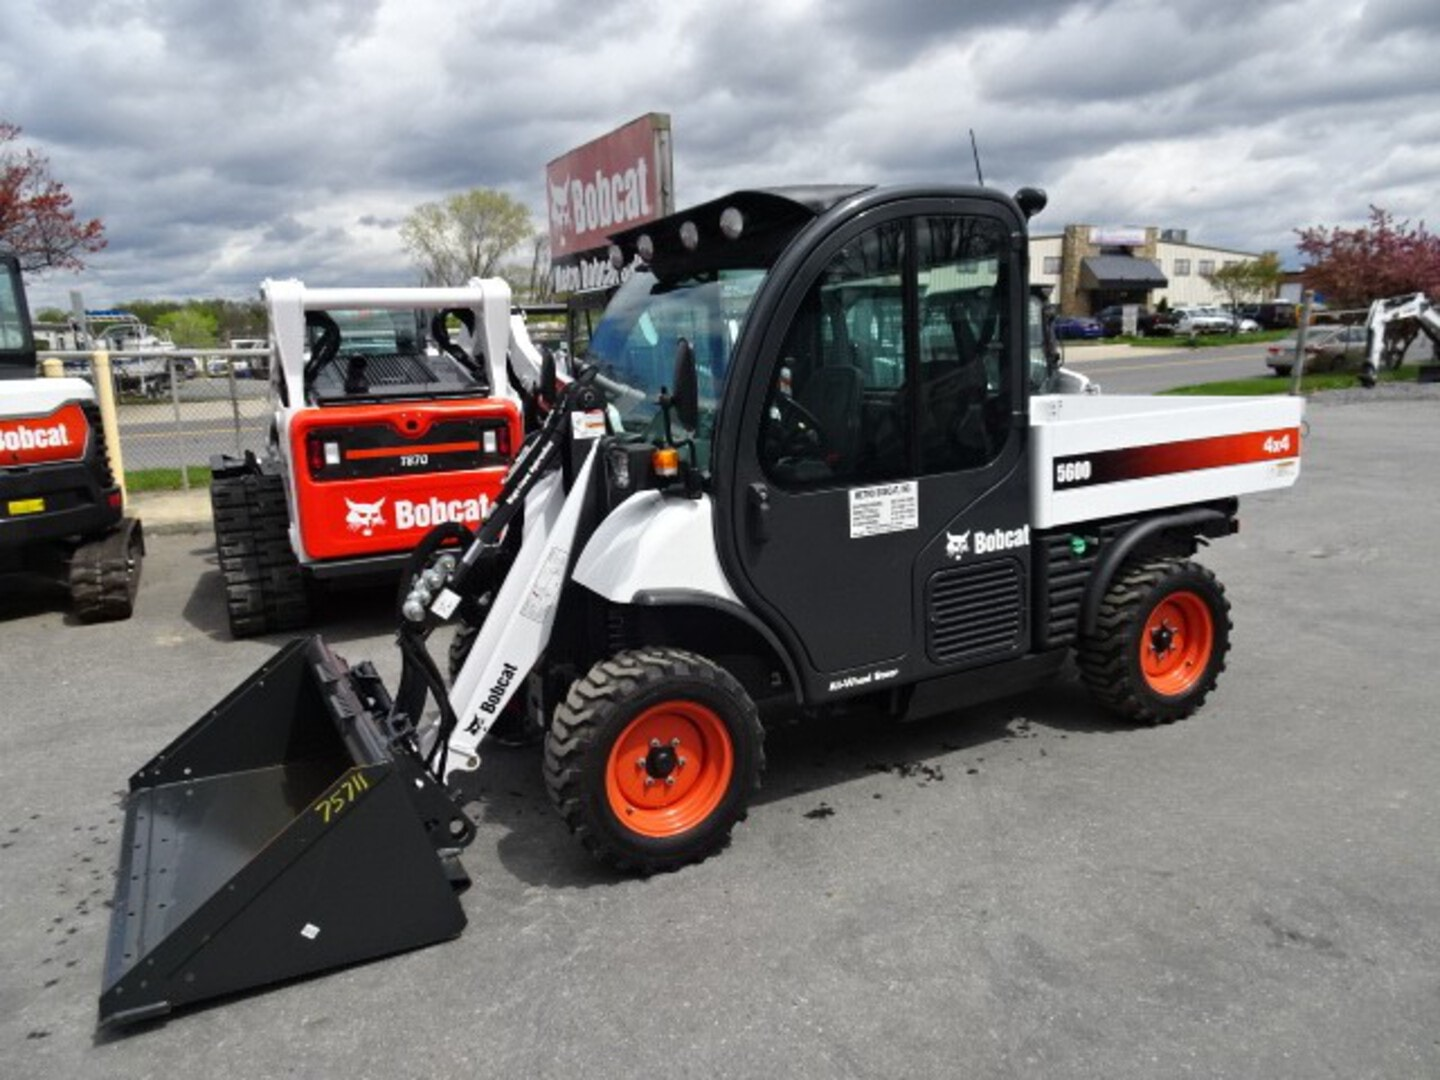 Used, 2021, Bobcat, 5600 TOOLCAT WORK MACHINE 61 HP Turbo-Charged Bobcat Engine (Tier 4) - $1000 CASH REBATE OR 0% FINANCING AVAILABLE - DELUXE ROAD PACKAGE - 2 SPEED - 1 YEAR WARRANTY UNLIMITED HOURS!, Toolcat™ Work Machines